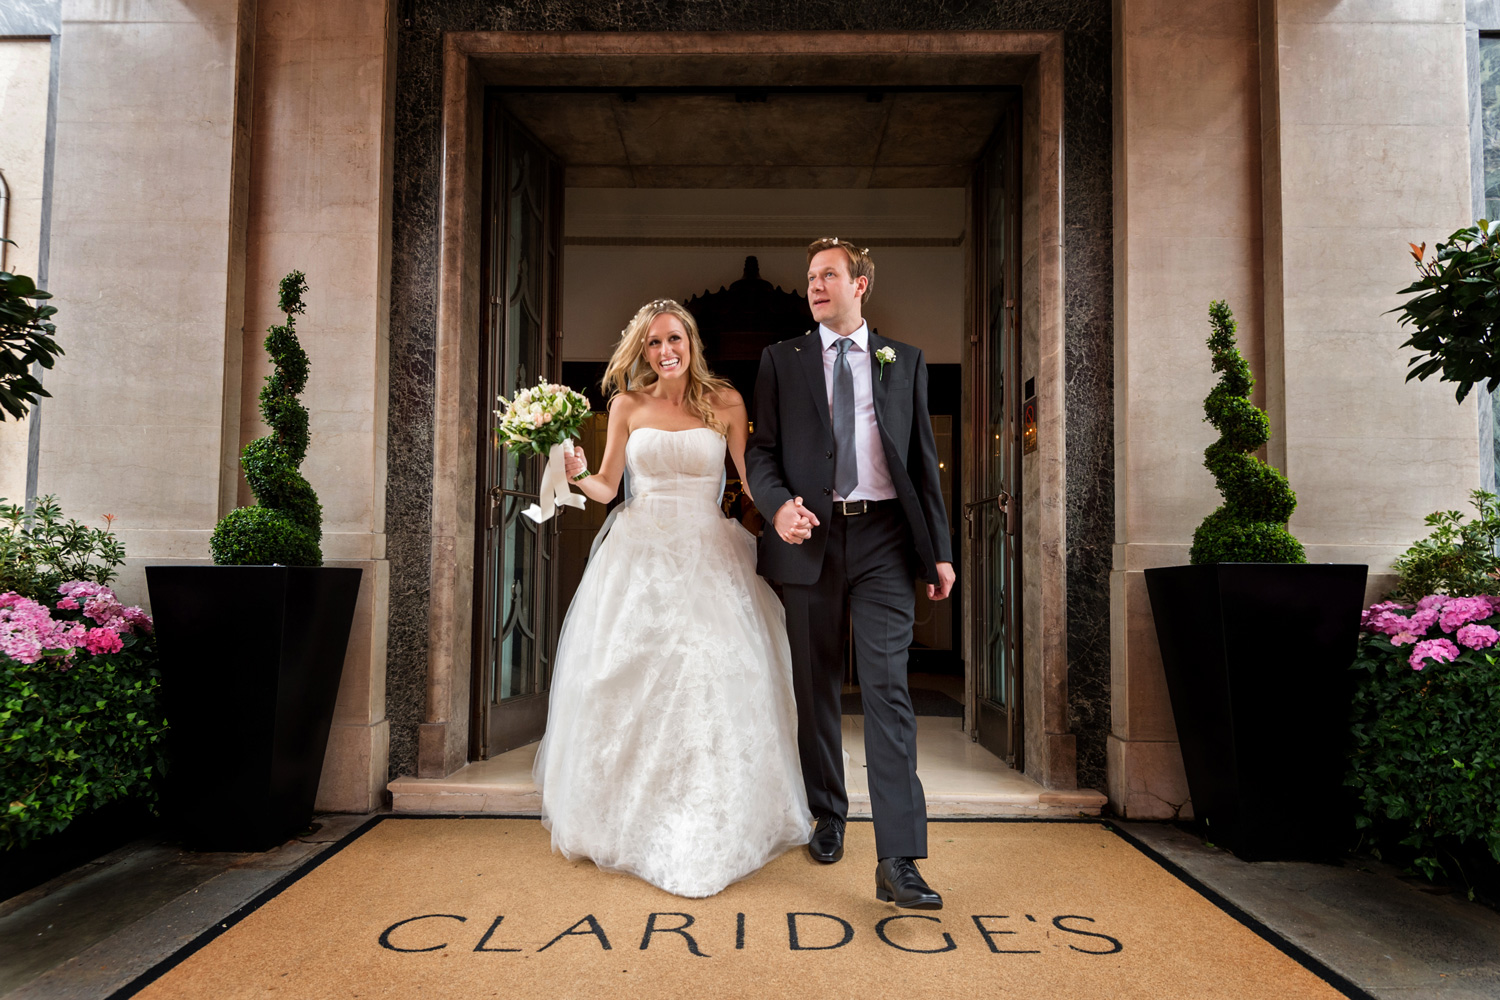 Claridge's wedding photographer